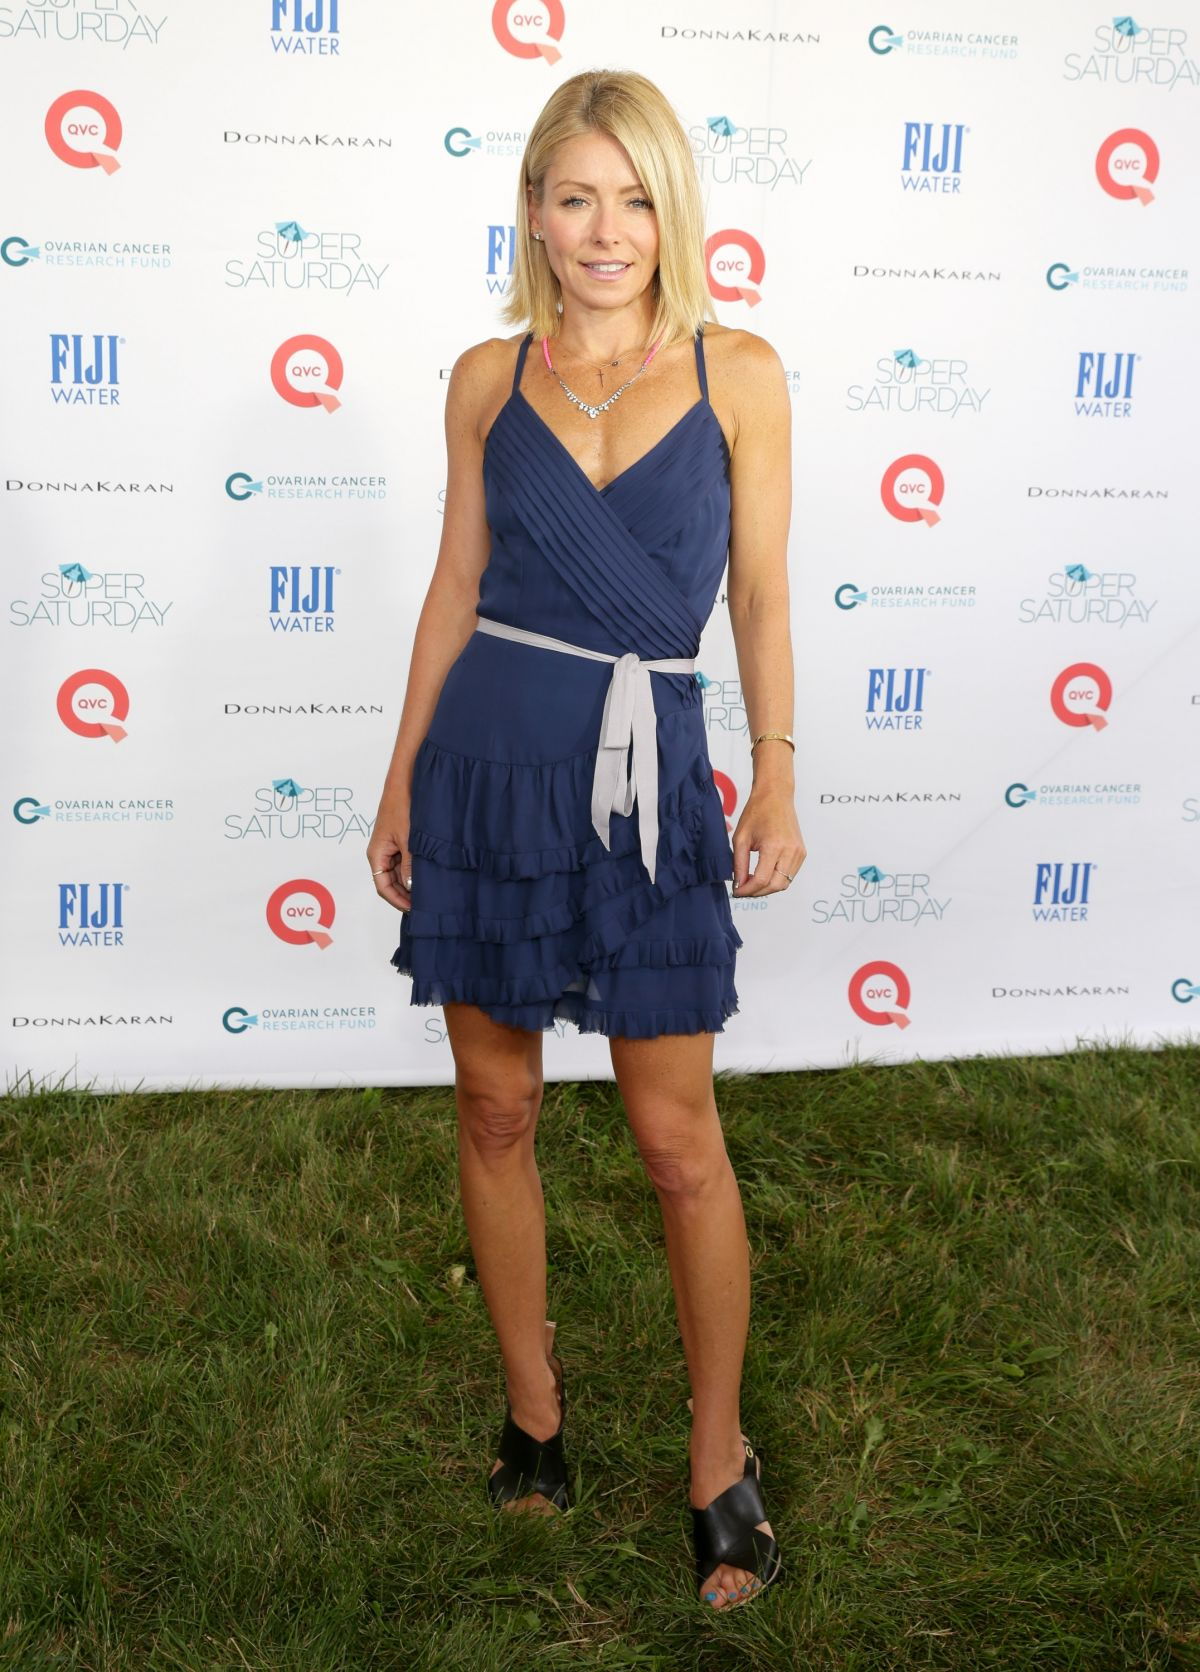 KELLY RIPA at OCRF